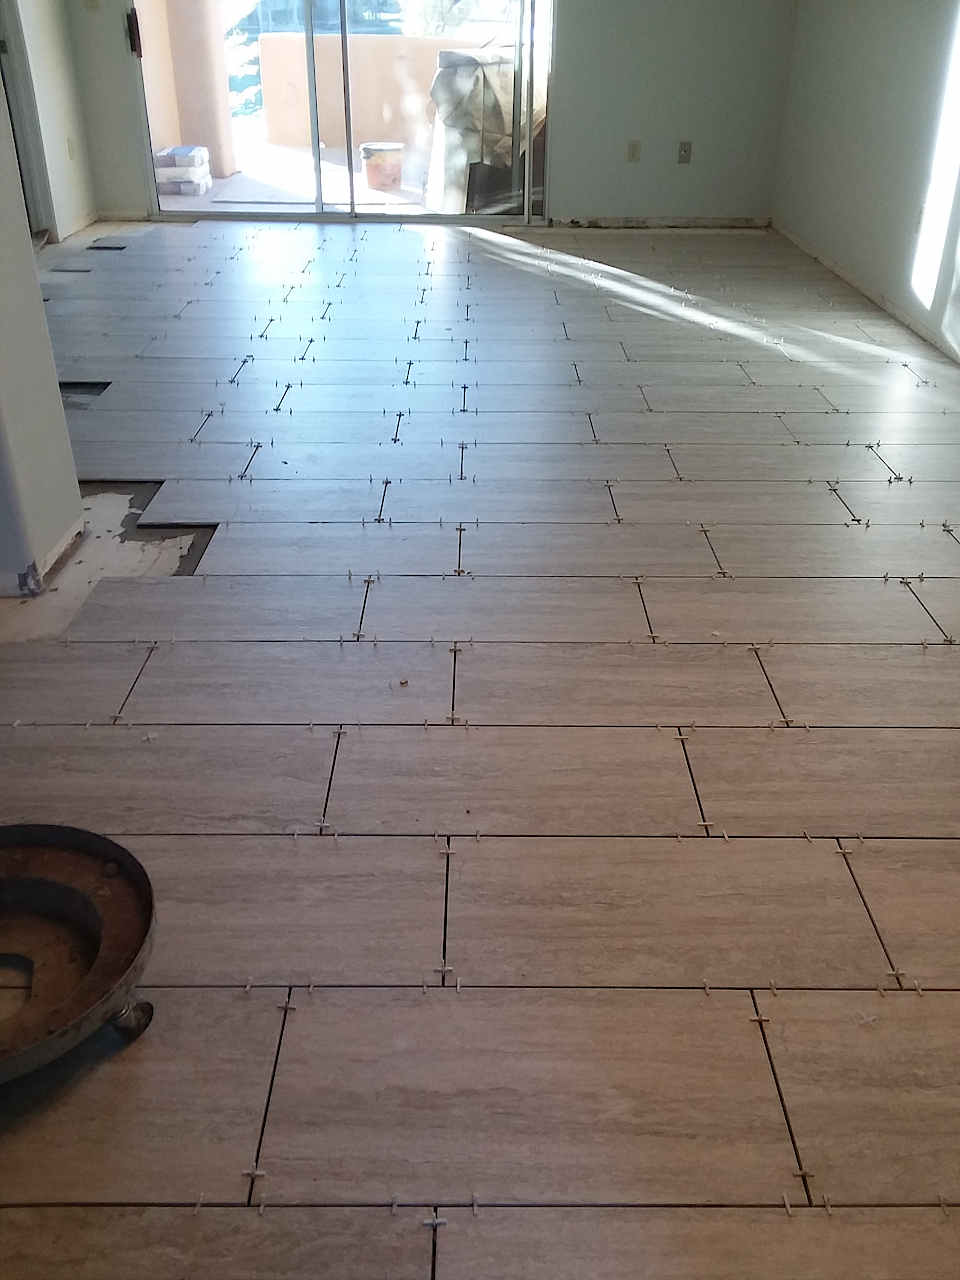 thrid-stagger-gray-tile-floor-12-x24